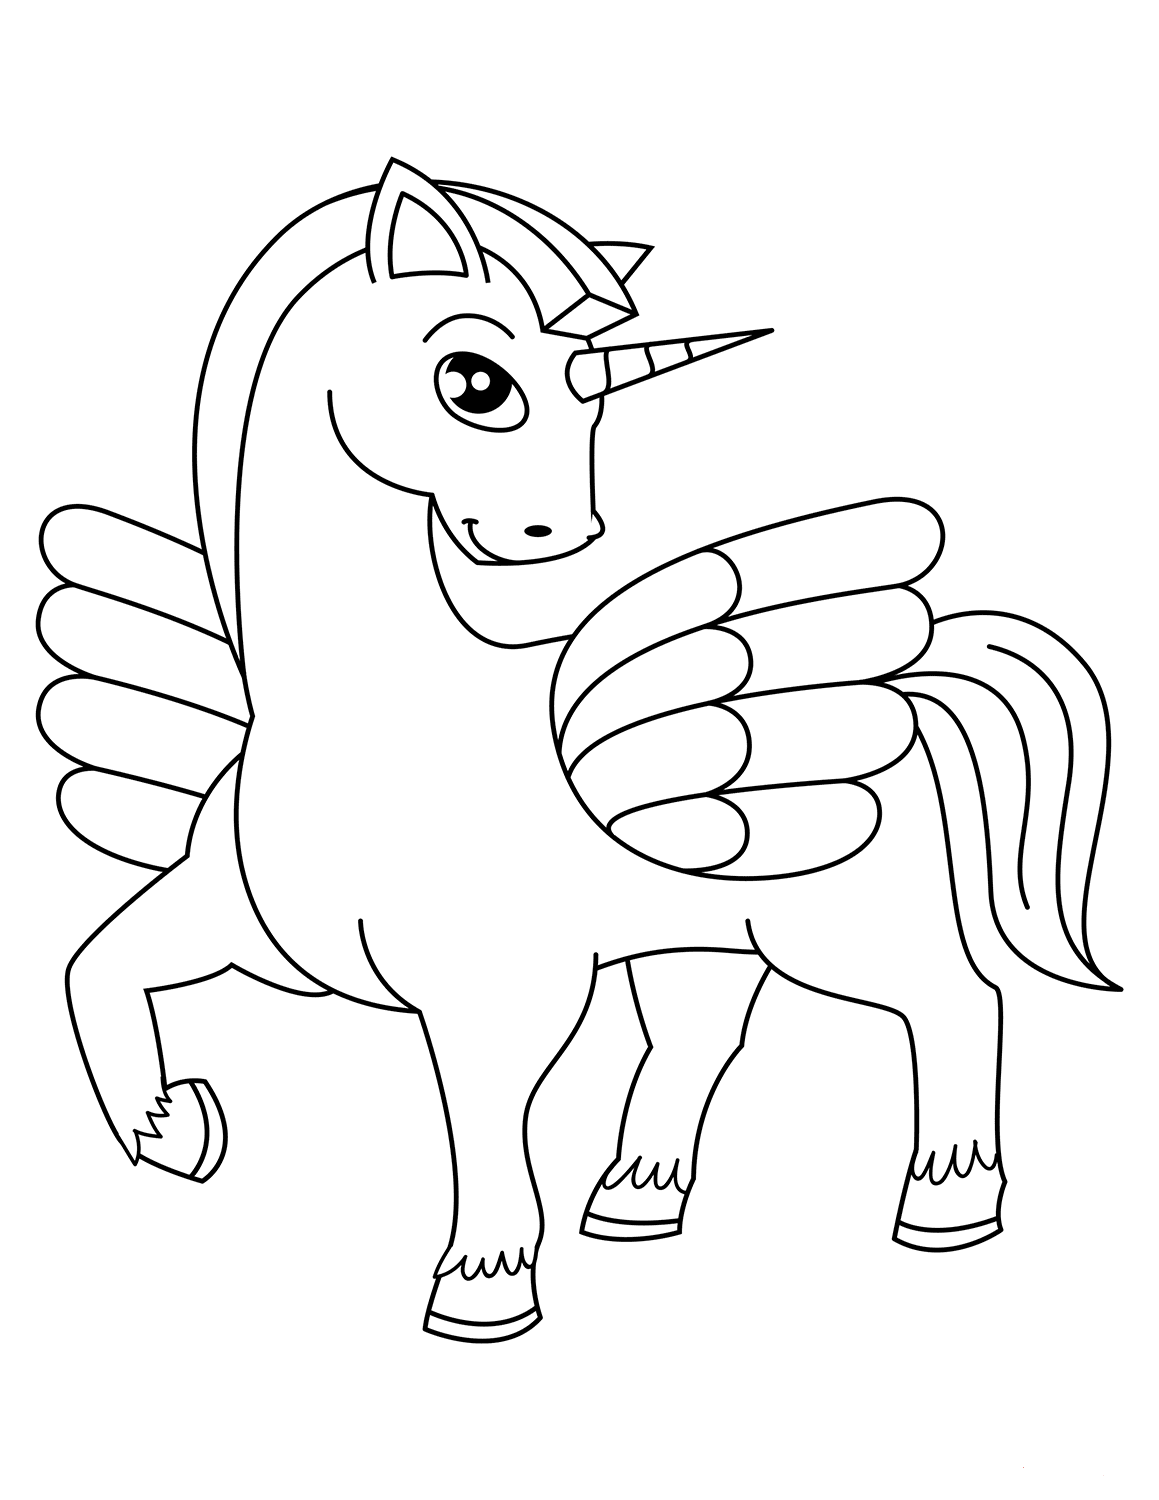 unicorn printables princess unicorn coloring pages at getcoloringscom free printables unicorn